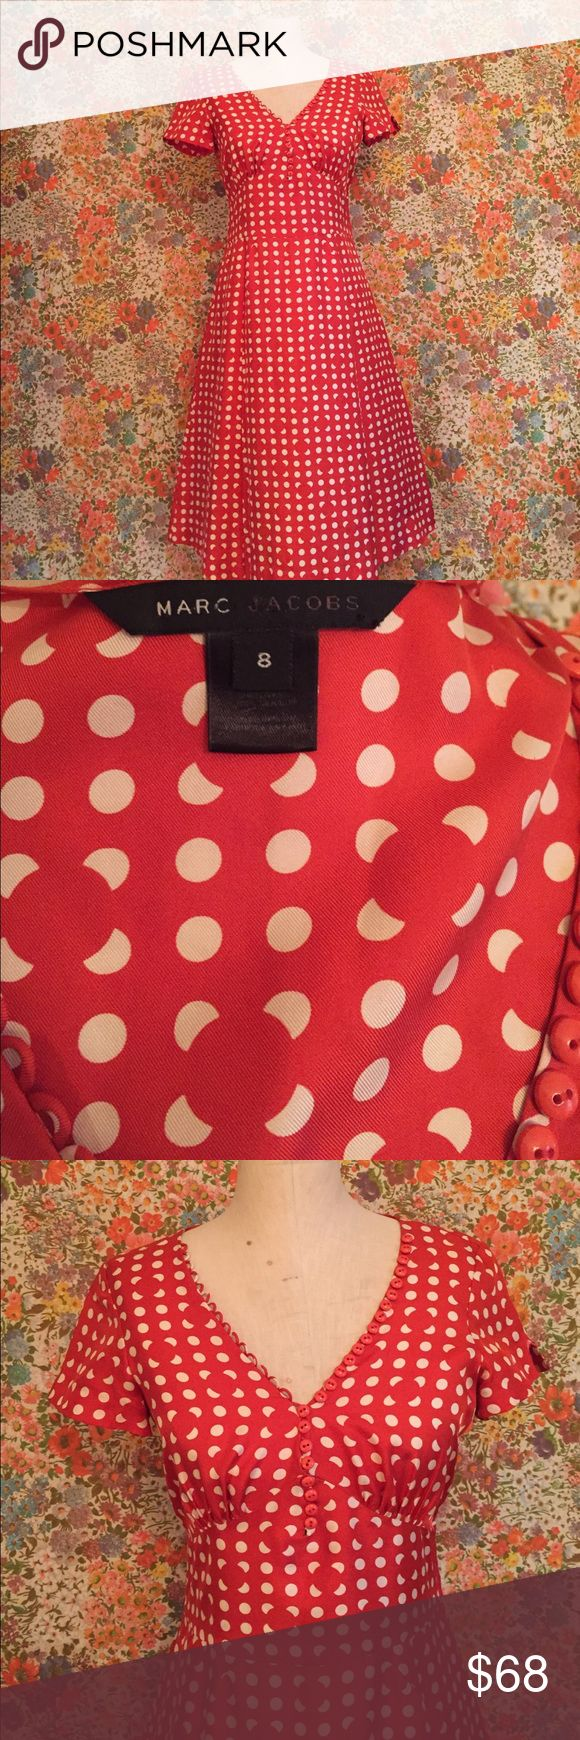 Marc Jacobs Polka Dot Red Dress Size 8 Super Cute Tea Length Marc Jacobs Red Polka Dot Dress! Size 8. Great condition, may need a little work on the sleeve stitch. But overall...Adorable! Marc Jacobs Dresses Midi